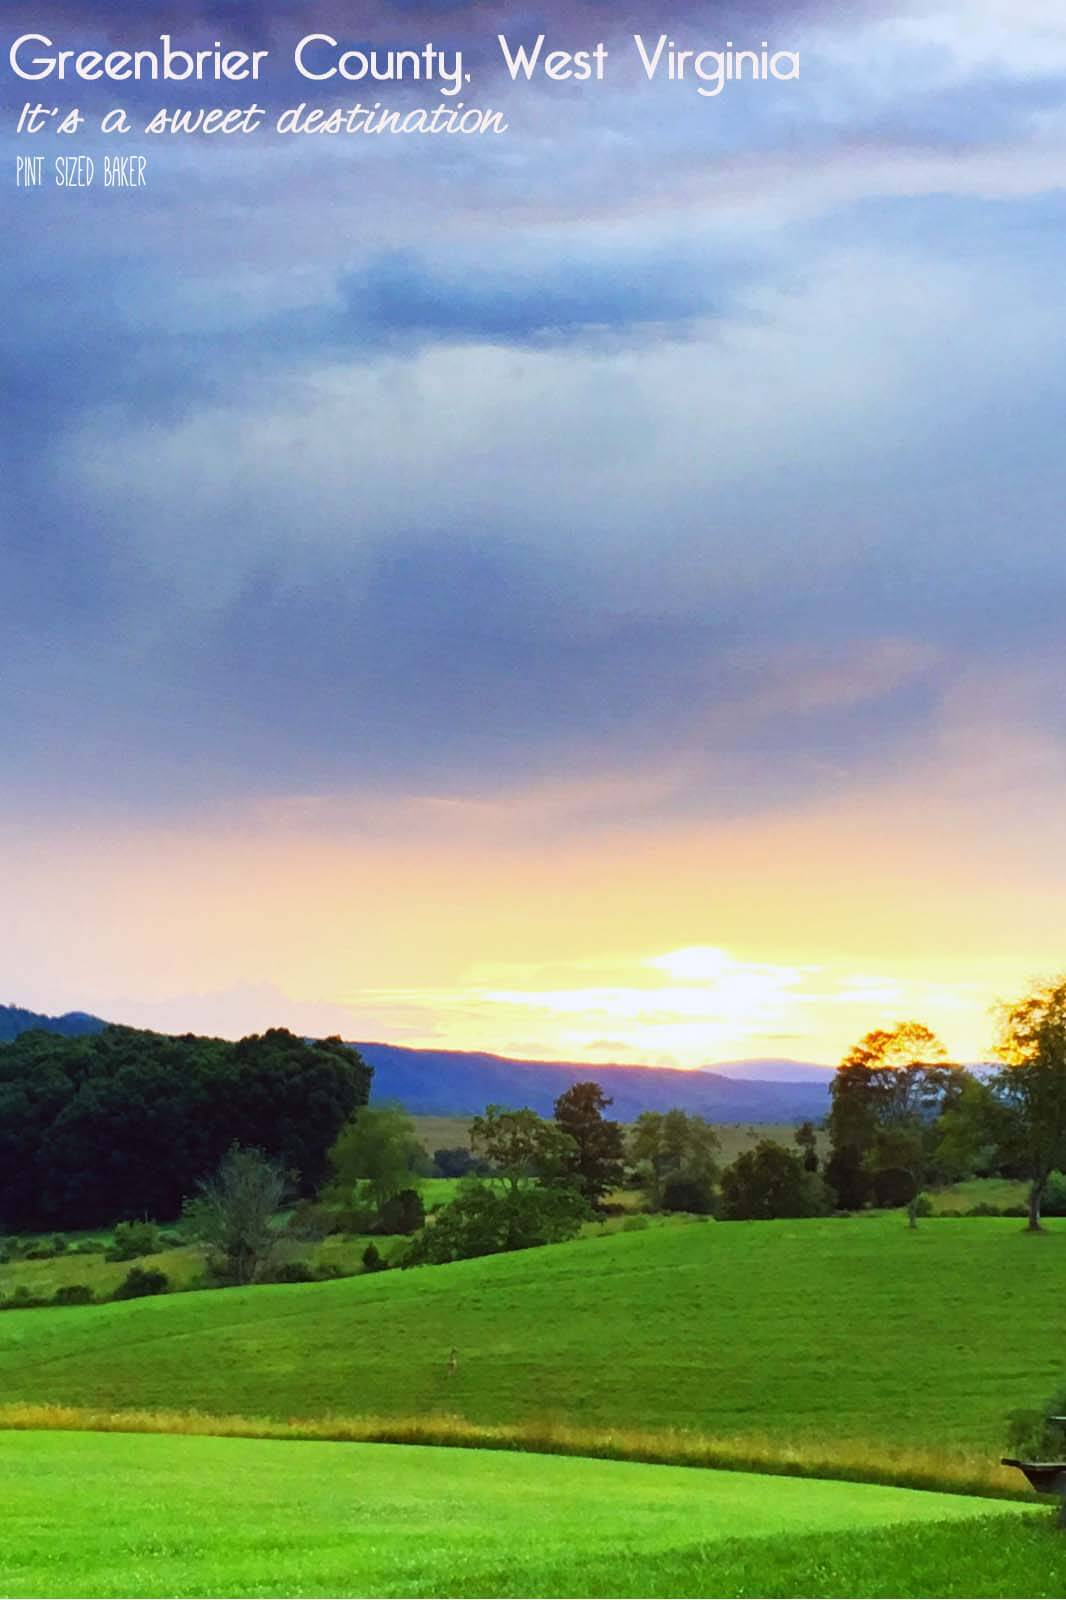 Rich with history, Greenbrier County, WV is the perfect place to get away to for outdoor lovers, adventure seekers and food lovers.